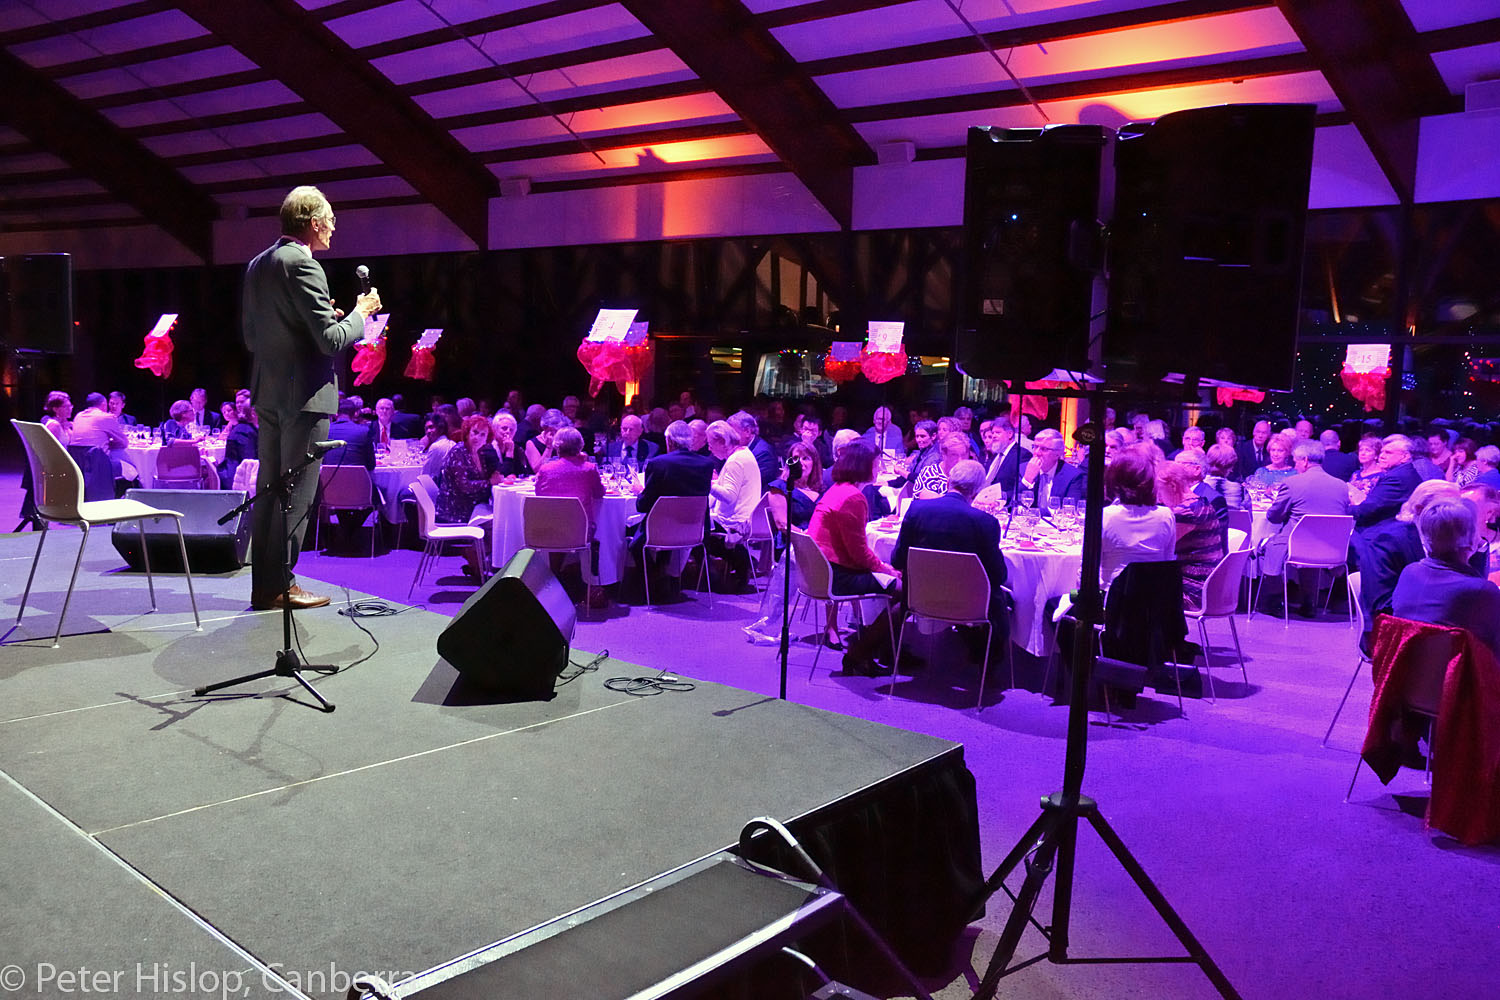 Chefs of Canberra CIMF Gala Dinner at The Conservatory. Introduction by Roland Peelman